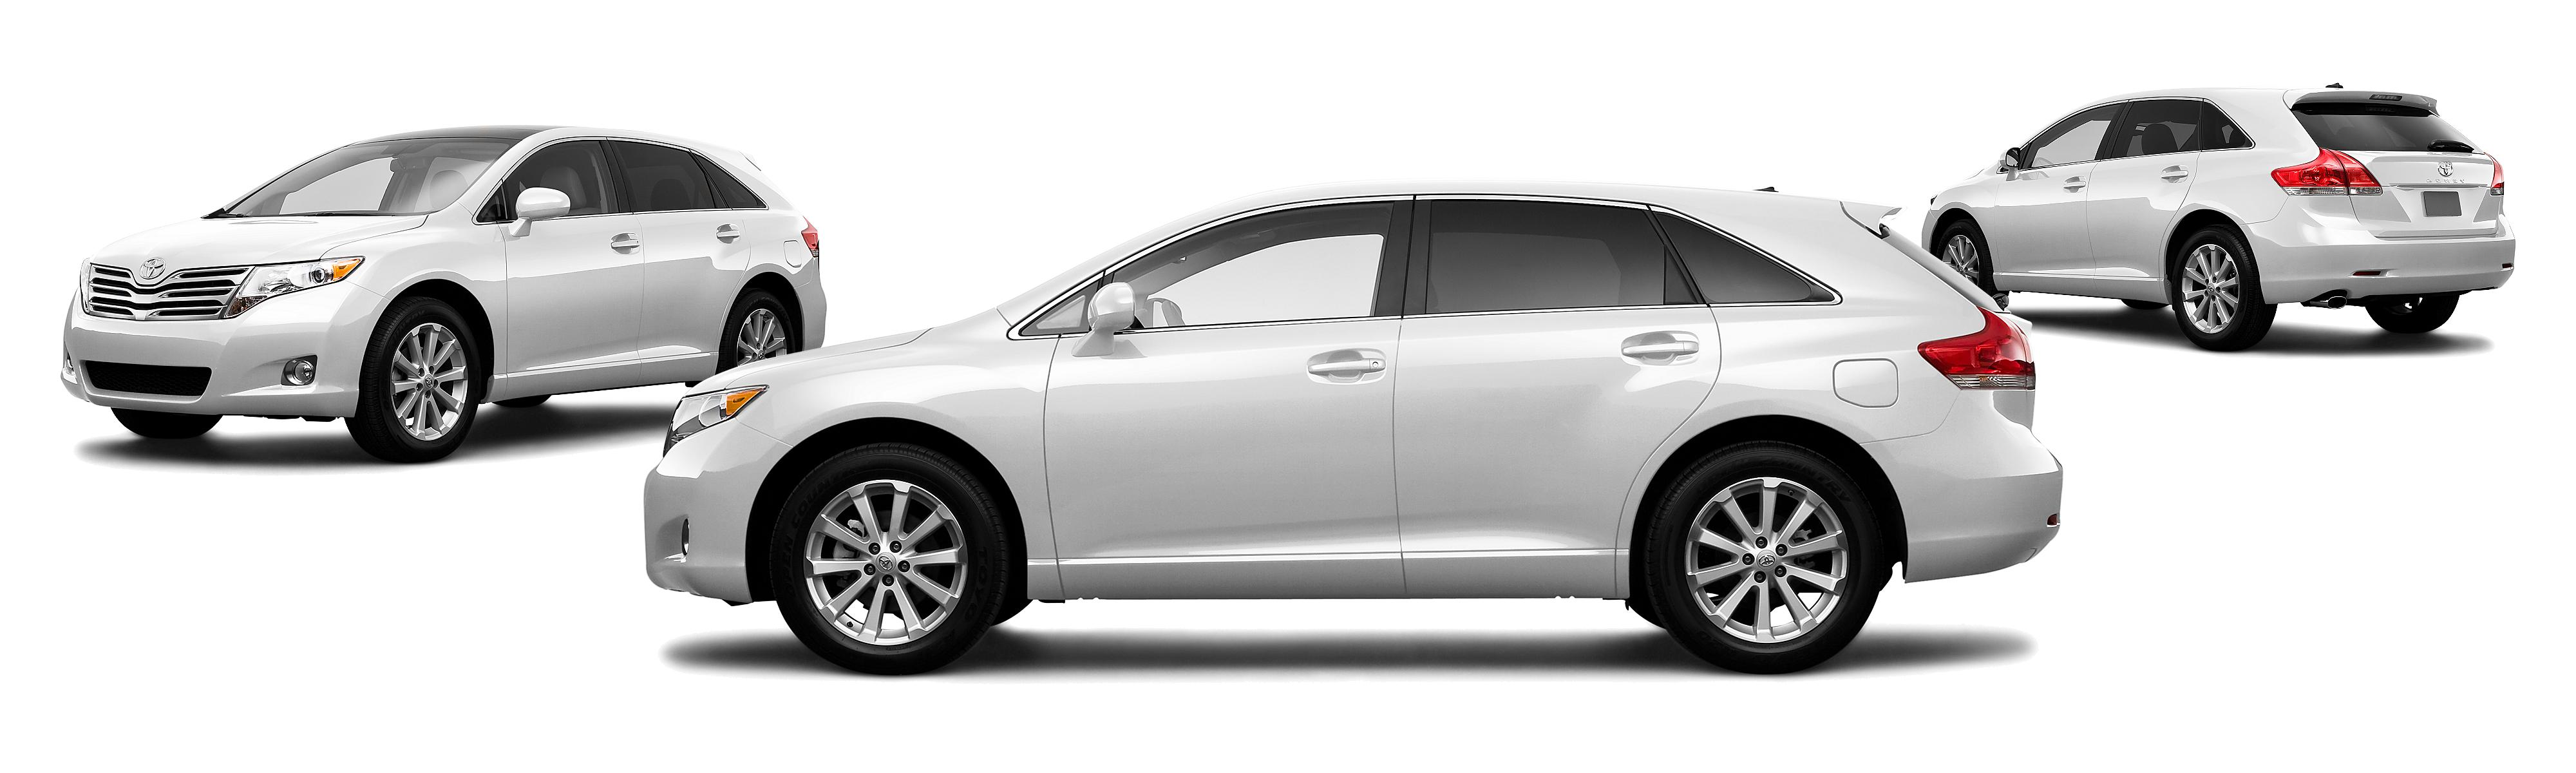 wallpaper venza picture pictures toyota